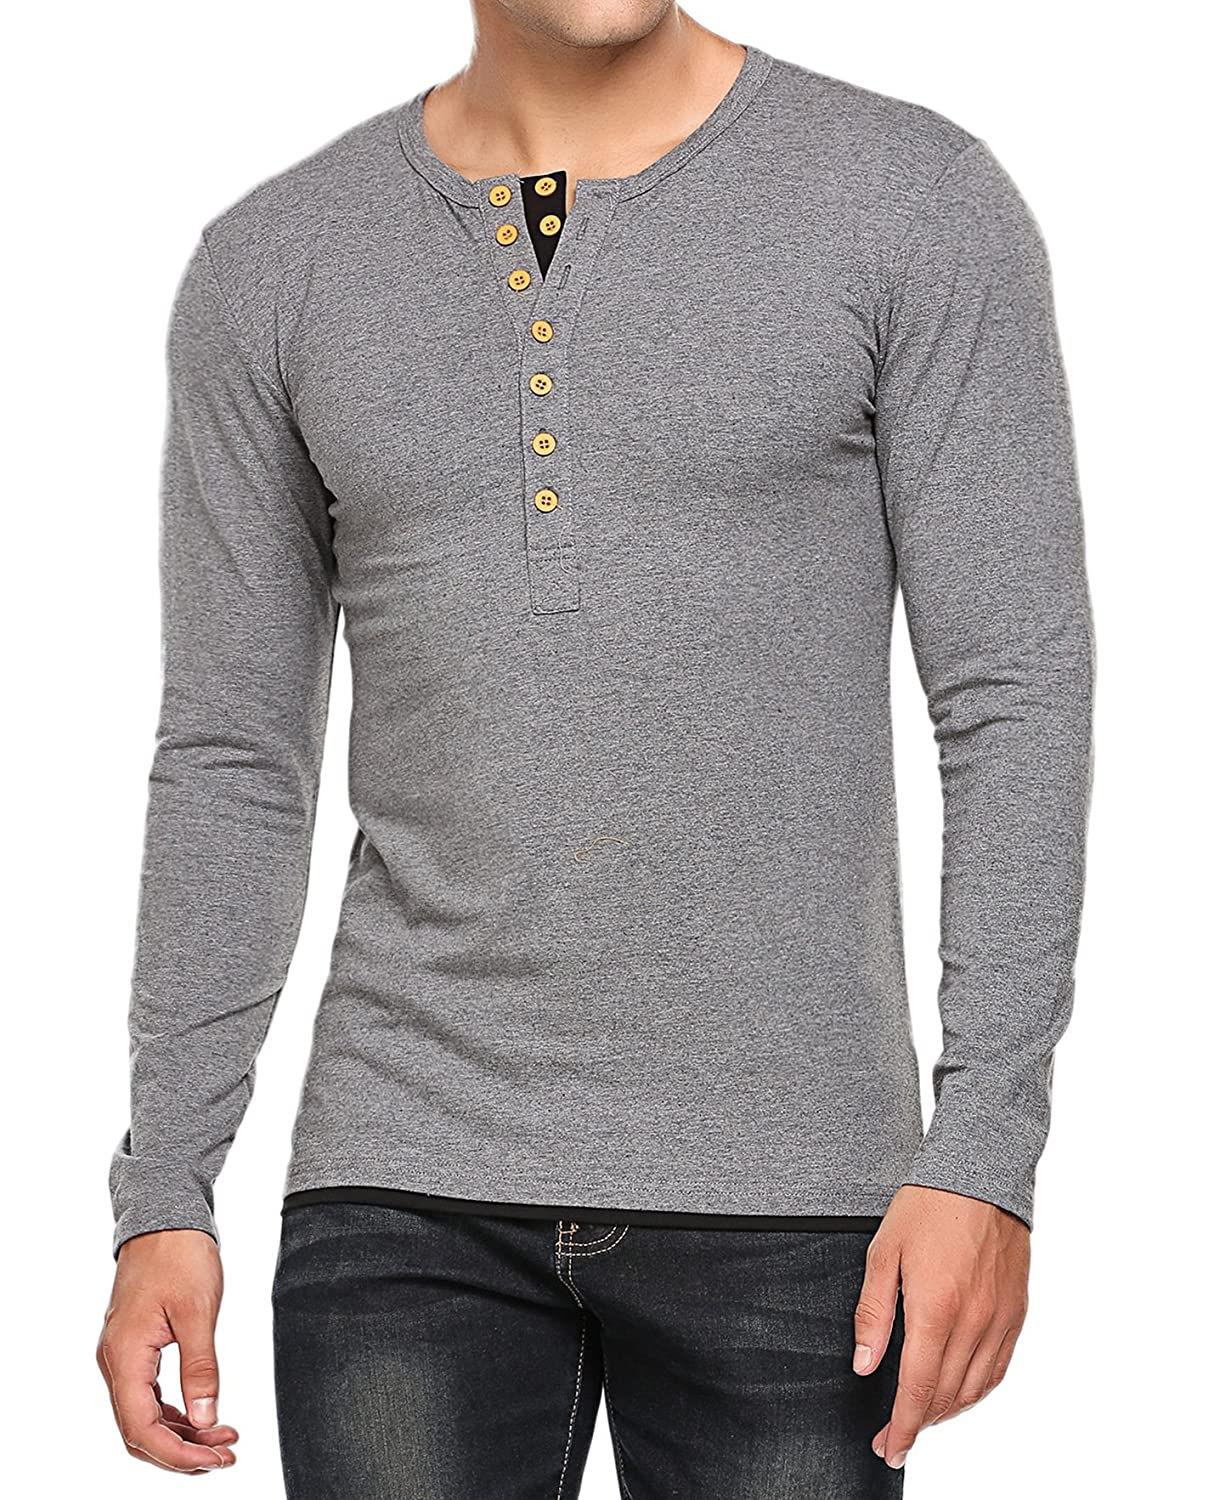 HOTOUCH Mens Henley Shirt Long Sleeve Slim Fit Button Up Cotton Casual Shirts AHJ005023